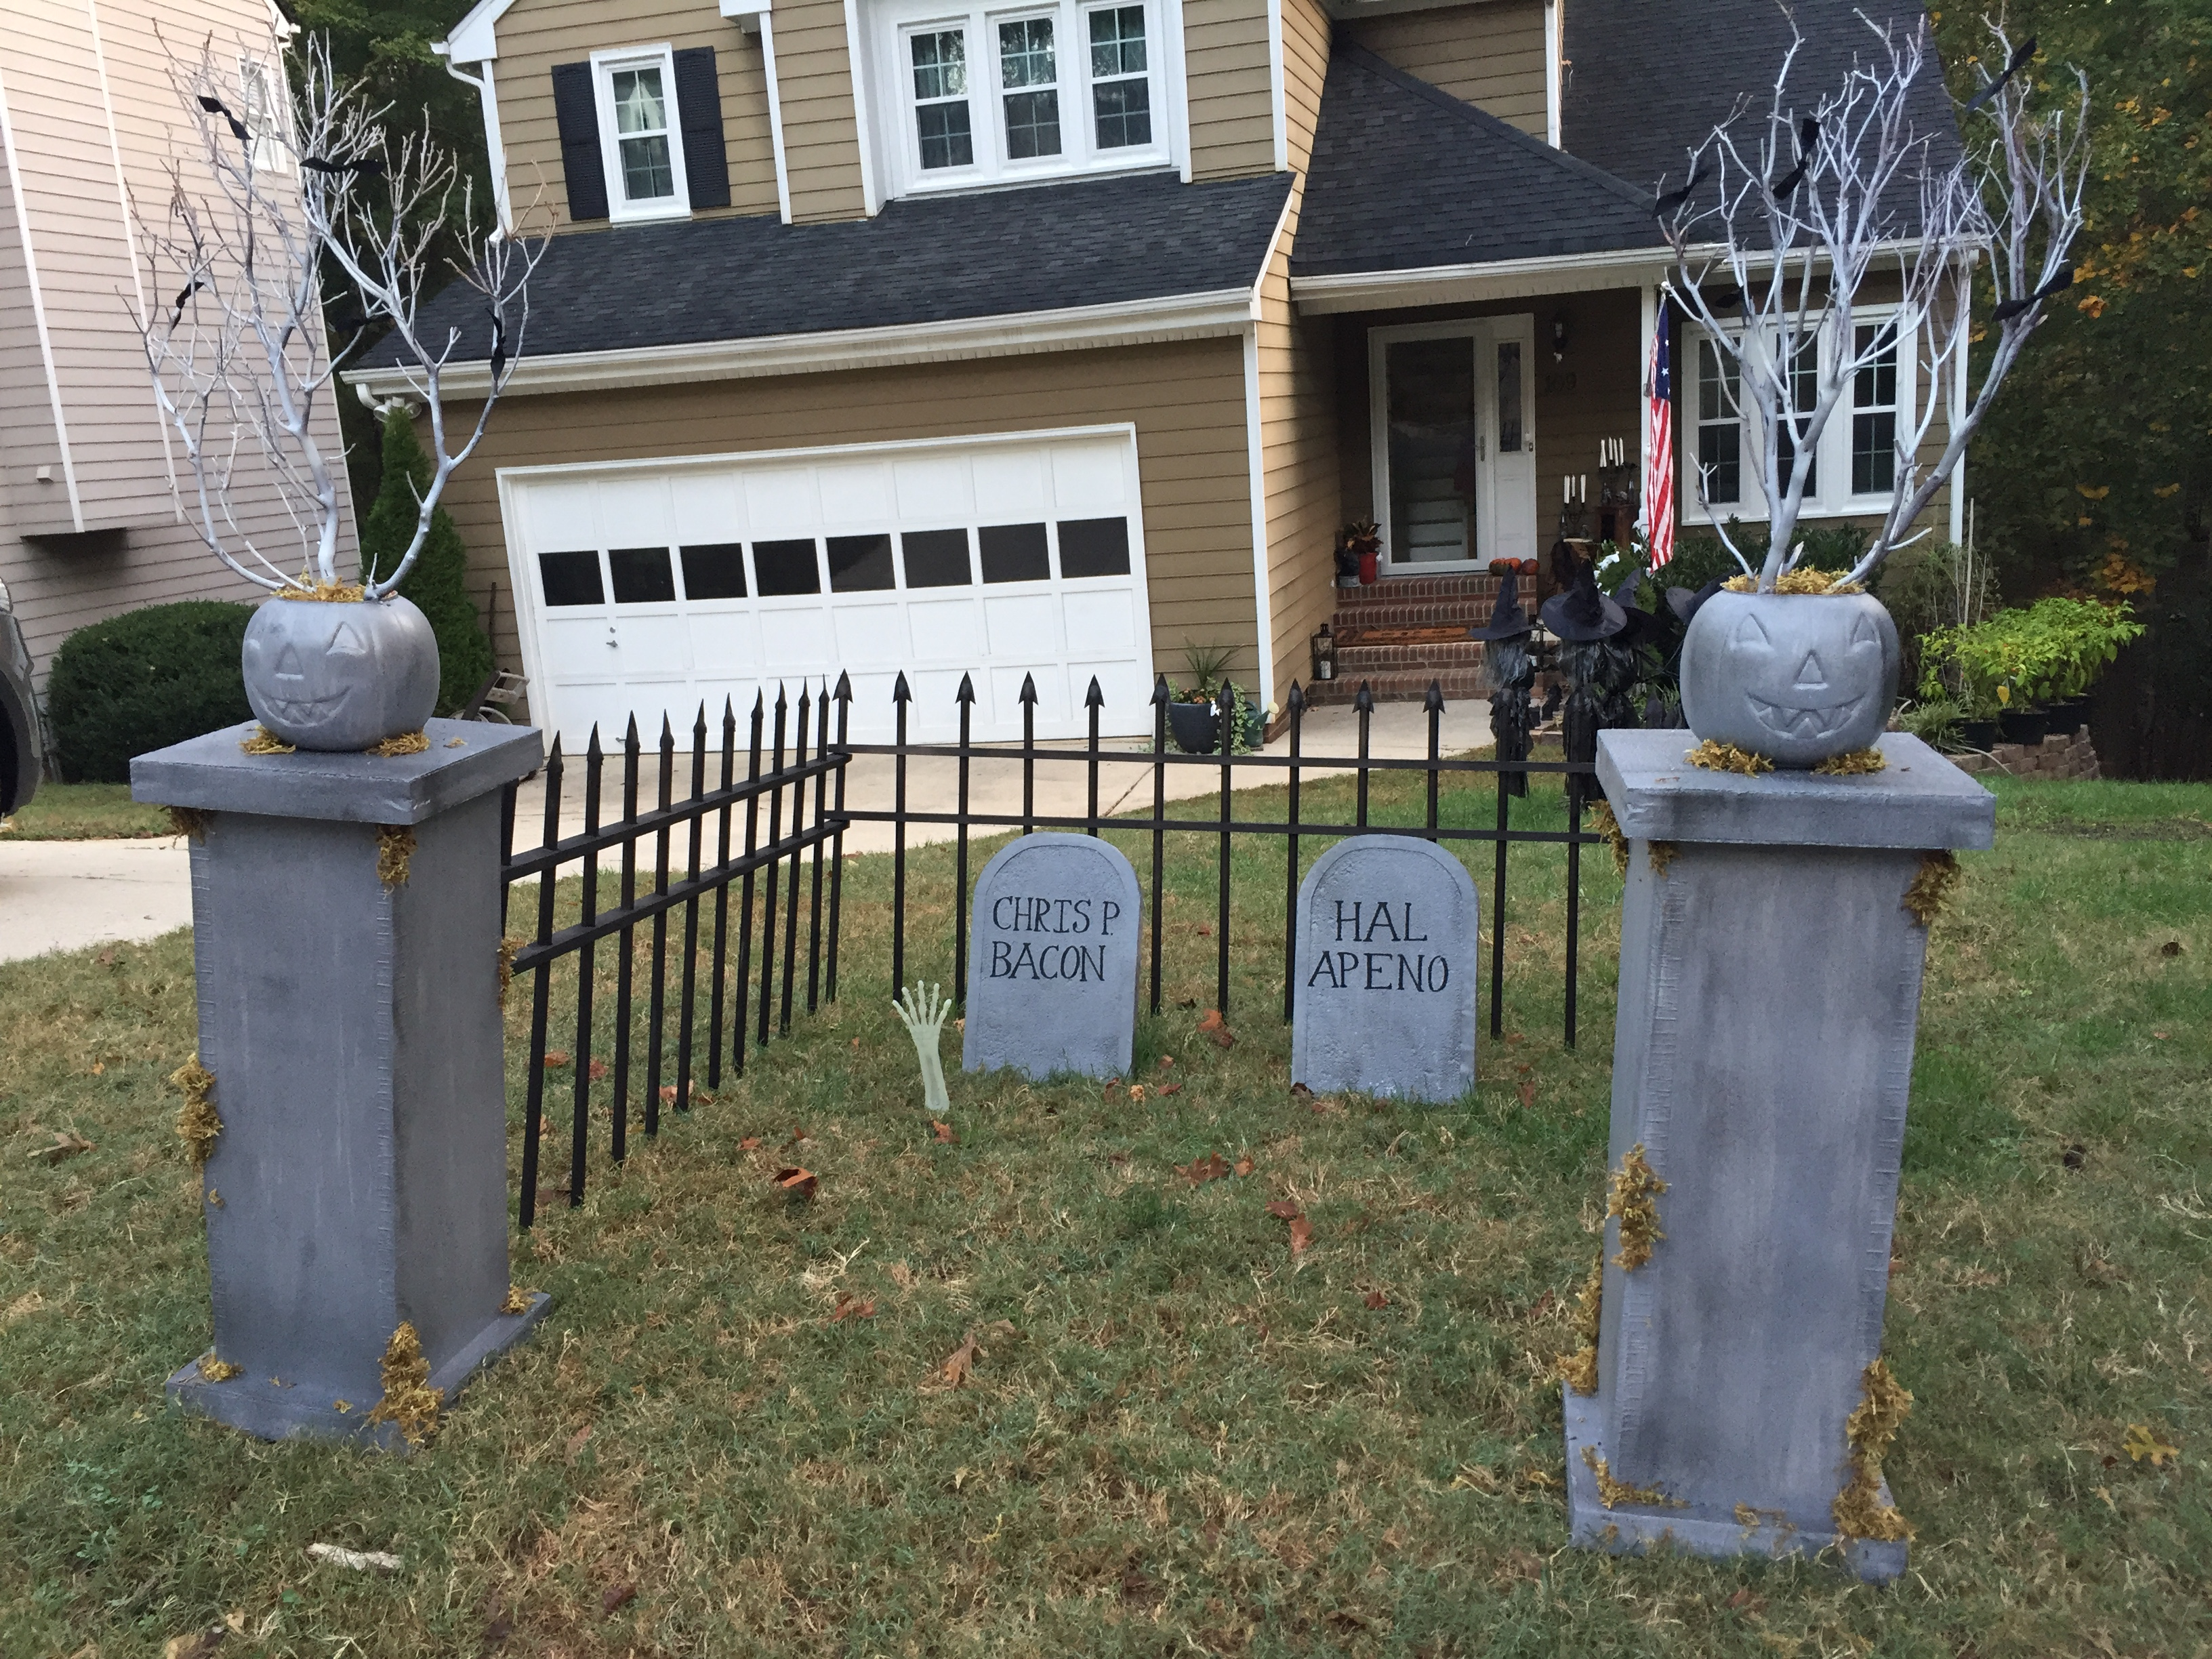 Halloween decorated houses inside - Probably Because I Didn T Have It Up Until 2 Days Before Halloween Any Longer And They Might Have Changed Their Tunes